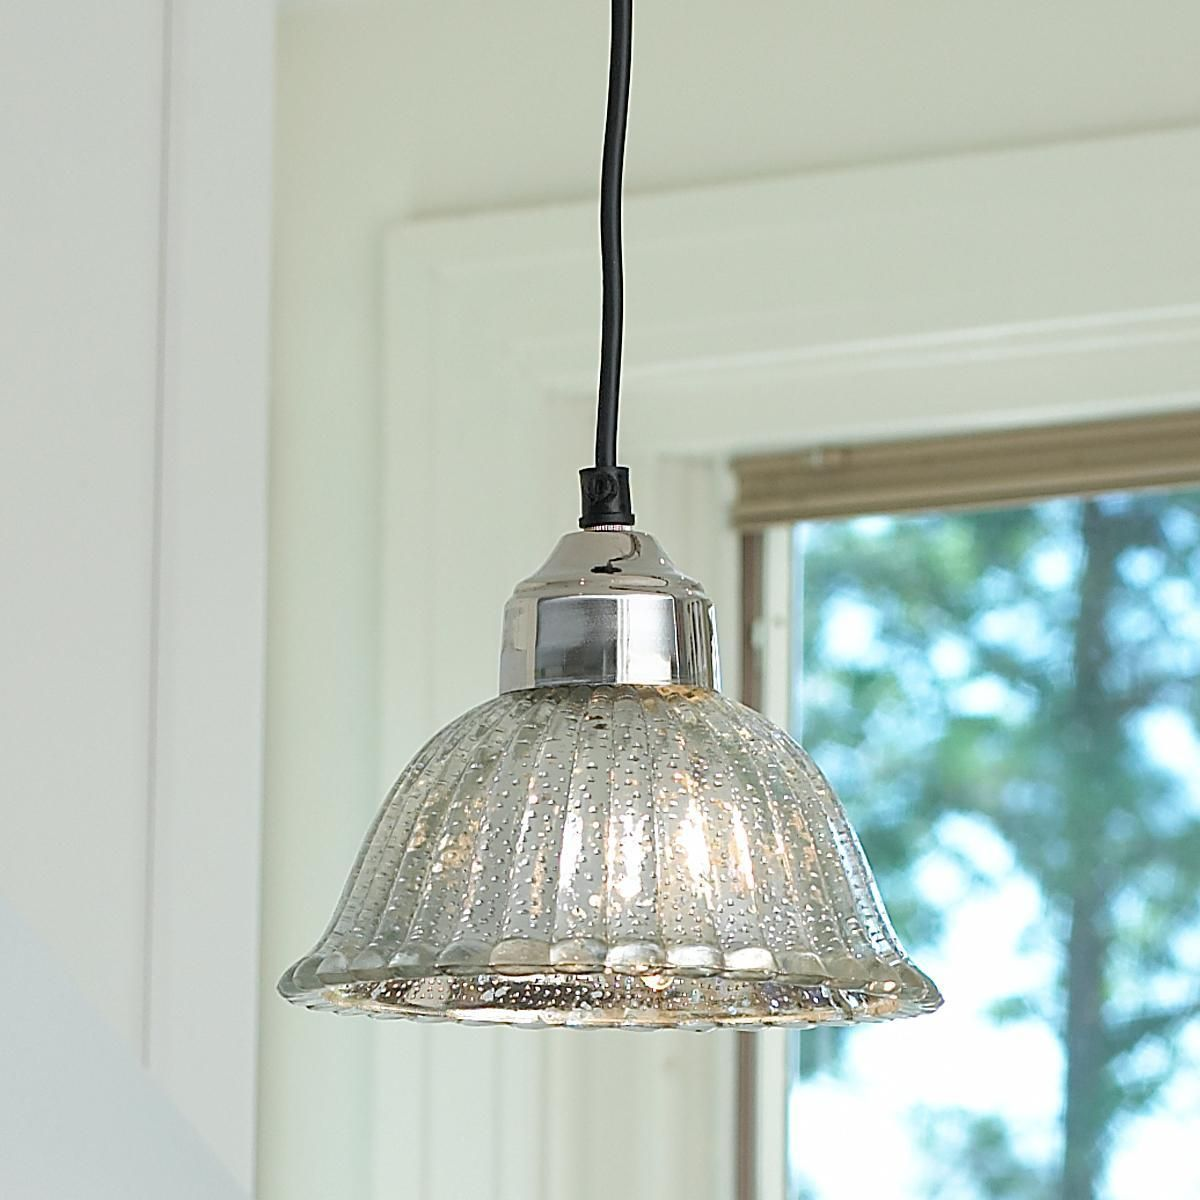 Fluted Mercury Glass Bell Pendant - Shades Of Light